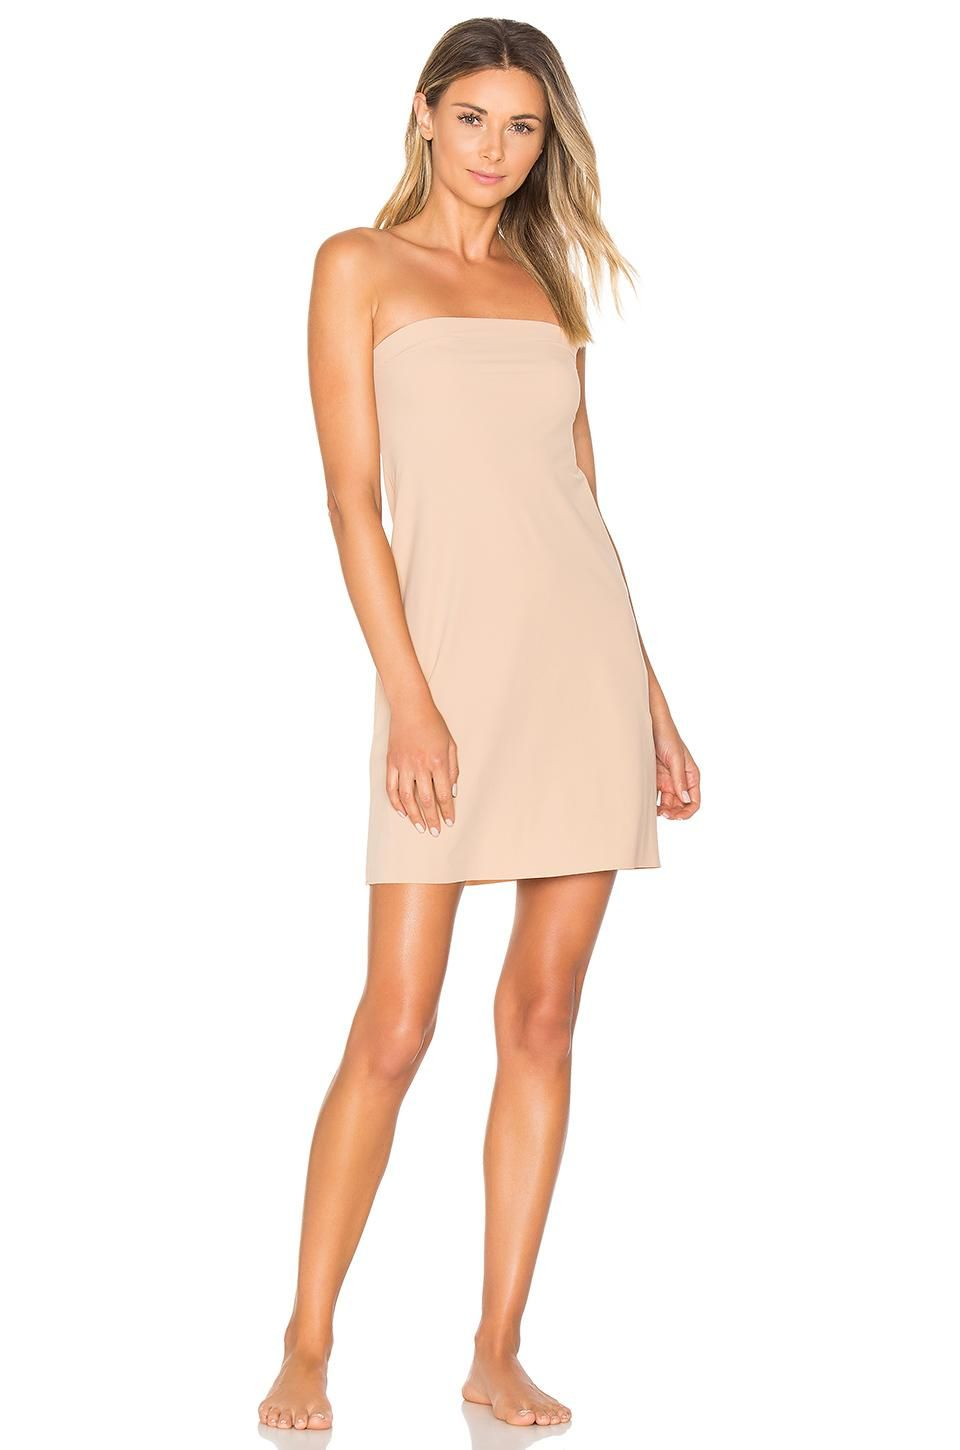 Buy Wear to what under see through dress picture trends